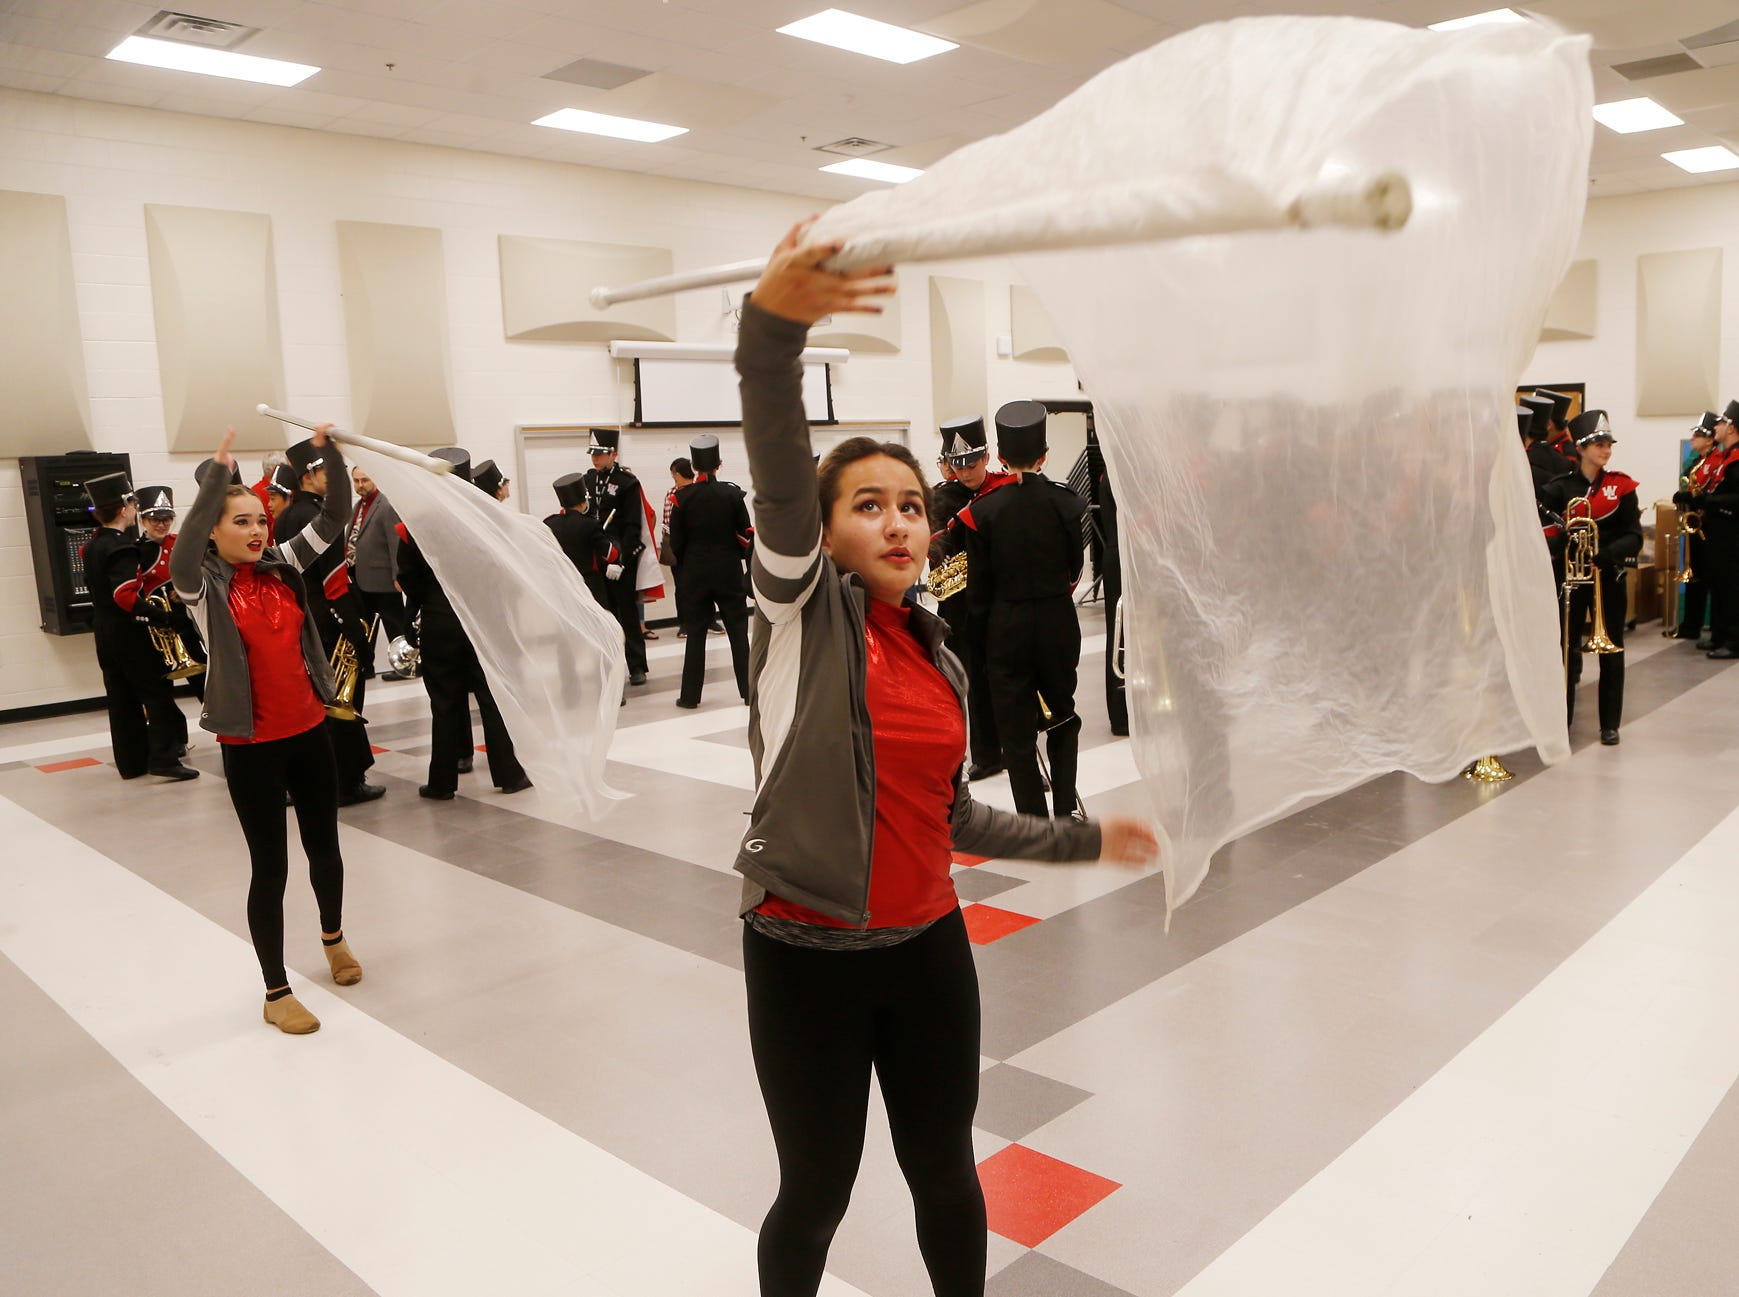 Kendra Noble, 13, foreground, and Leanne Cray, 15, twirl banners as the West Lafayette High School marching band prepares to perform at ribbon cutting ceremonies for West Lafayette Intermediate School Wednesday, October 10, 2018, in West Lafayette. West Lafayette Intermediate School is the first new school building in West Lafayette Community School Corporation since 1961.